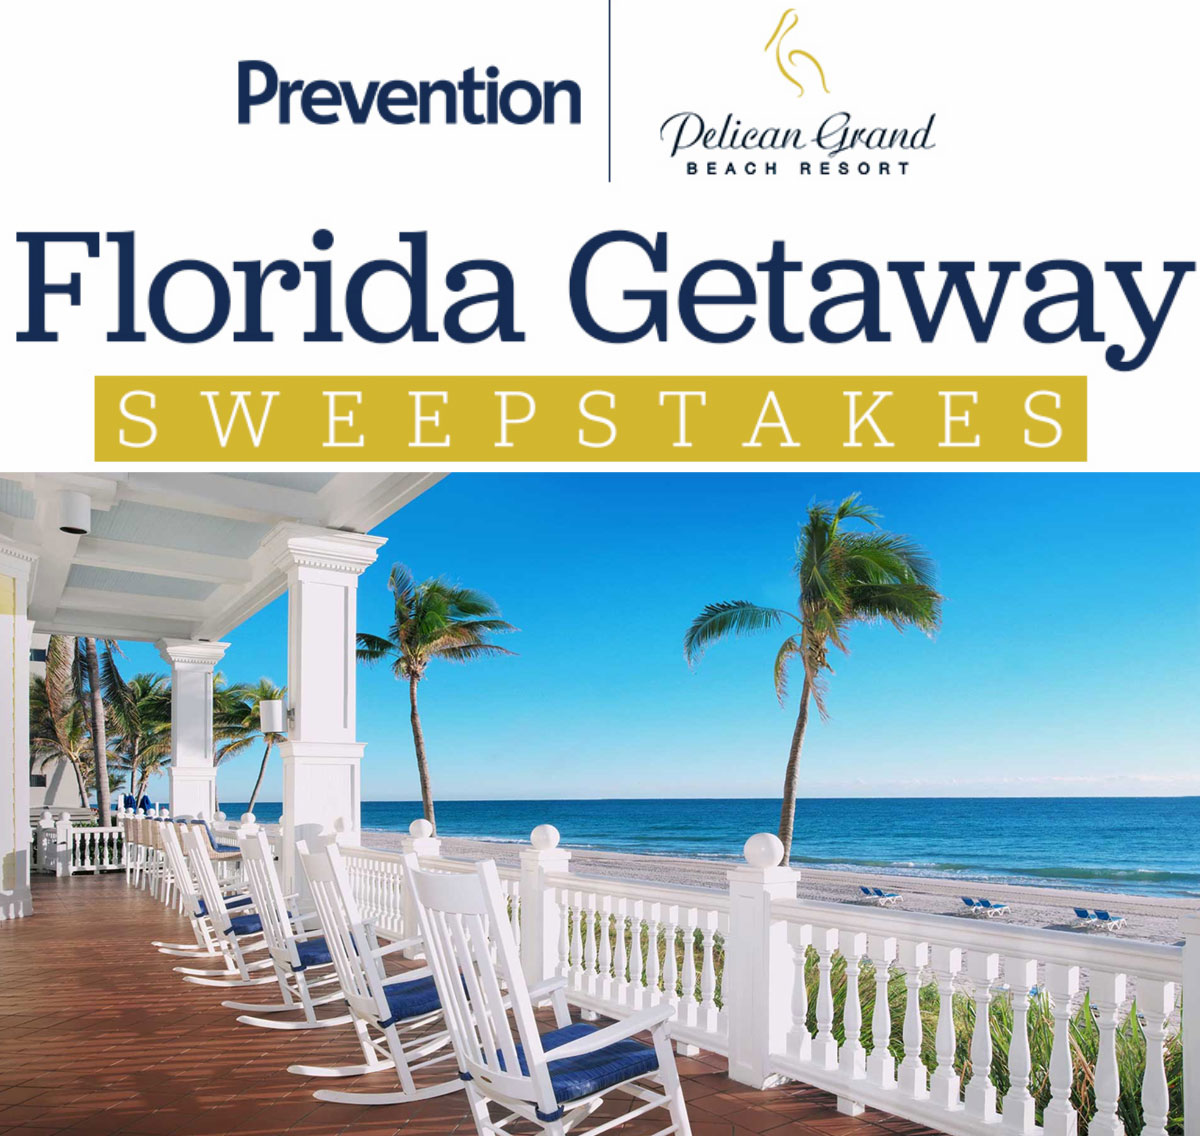 Enter for your chance to win a trip for two to the Pelican Grand Beach Resort in Ft. Lauderdale, Florida. The grand prize winner will relax and unwind for three nights in a suite and indulge at PURE Spa